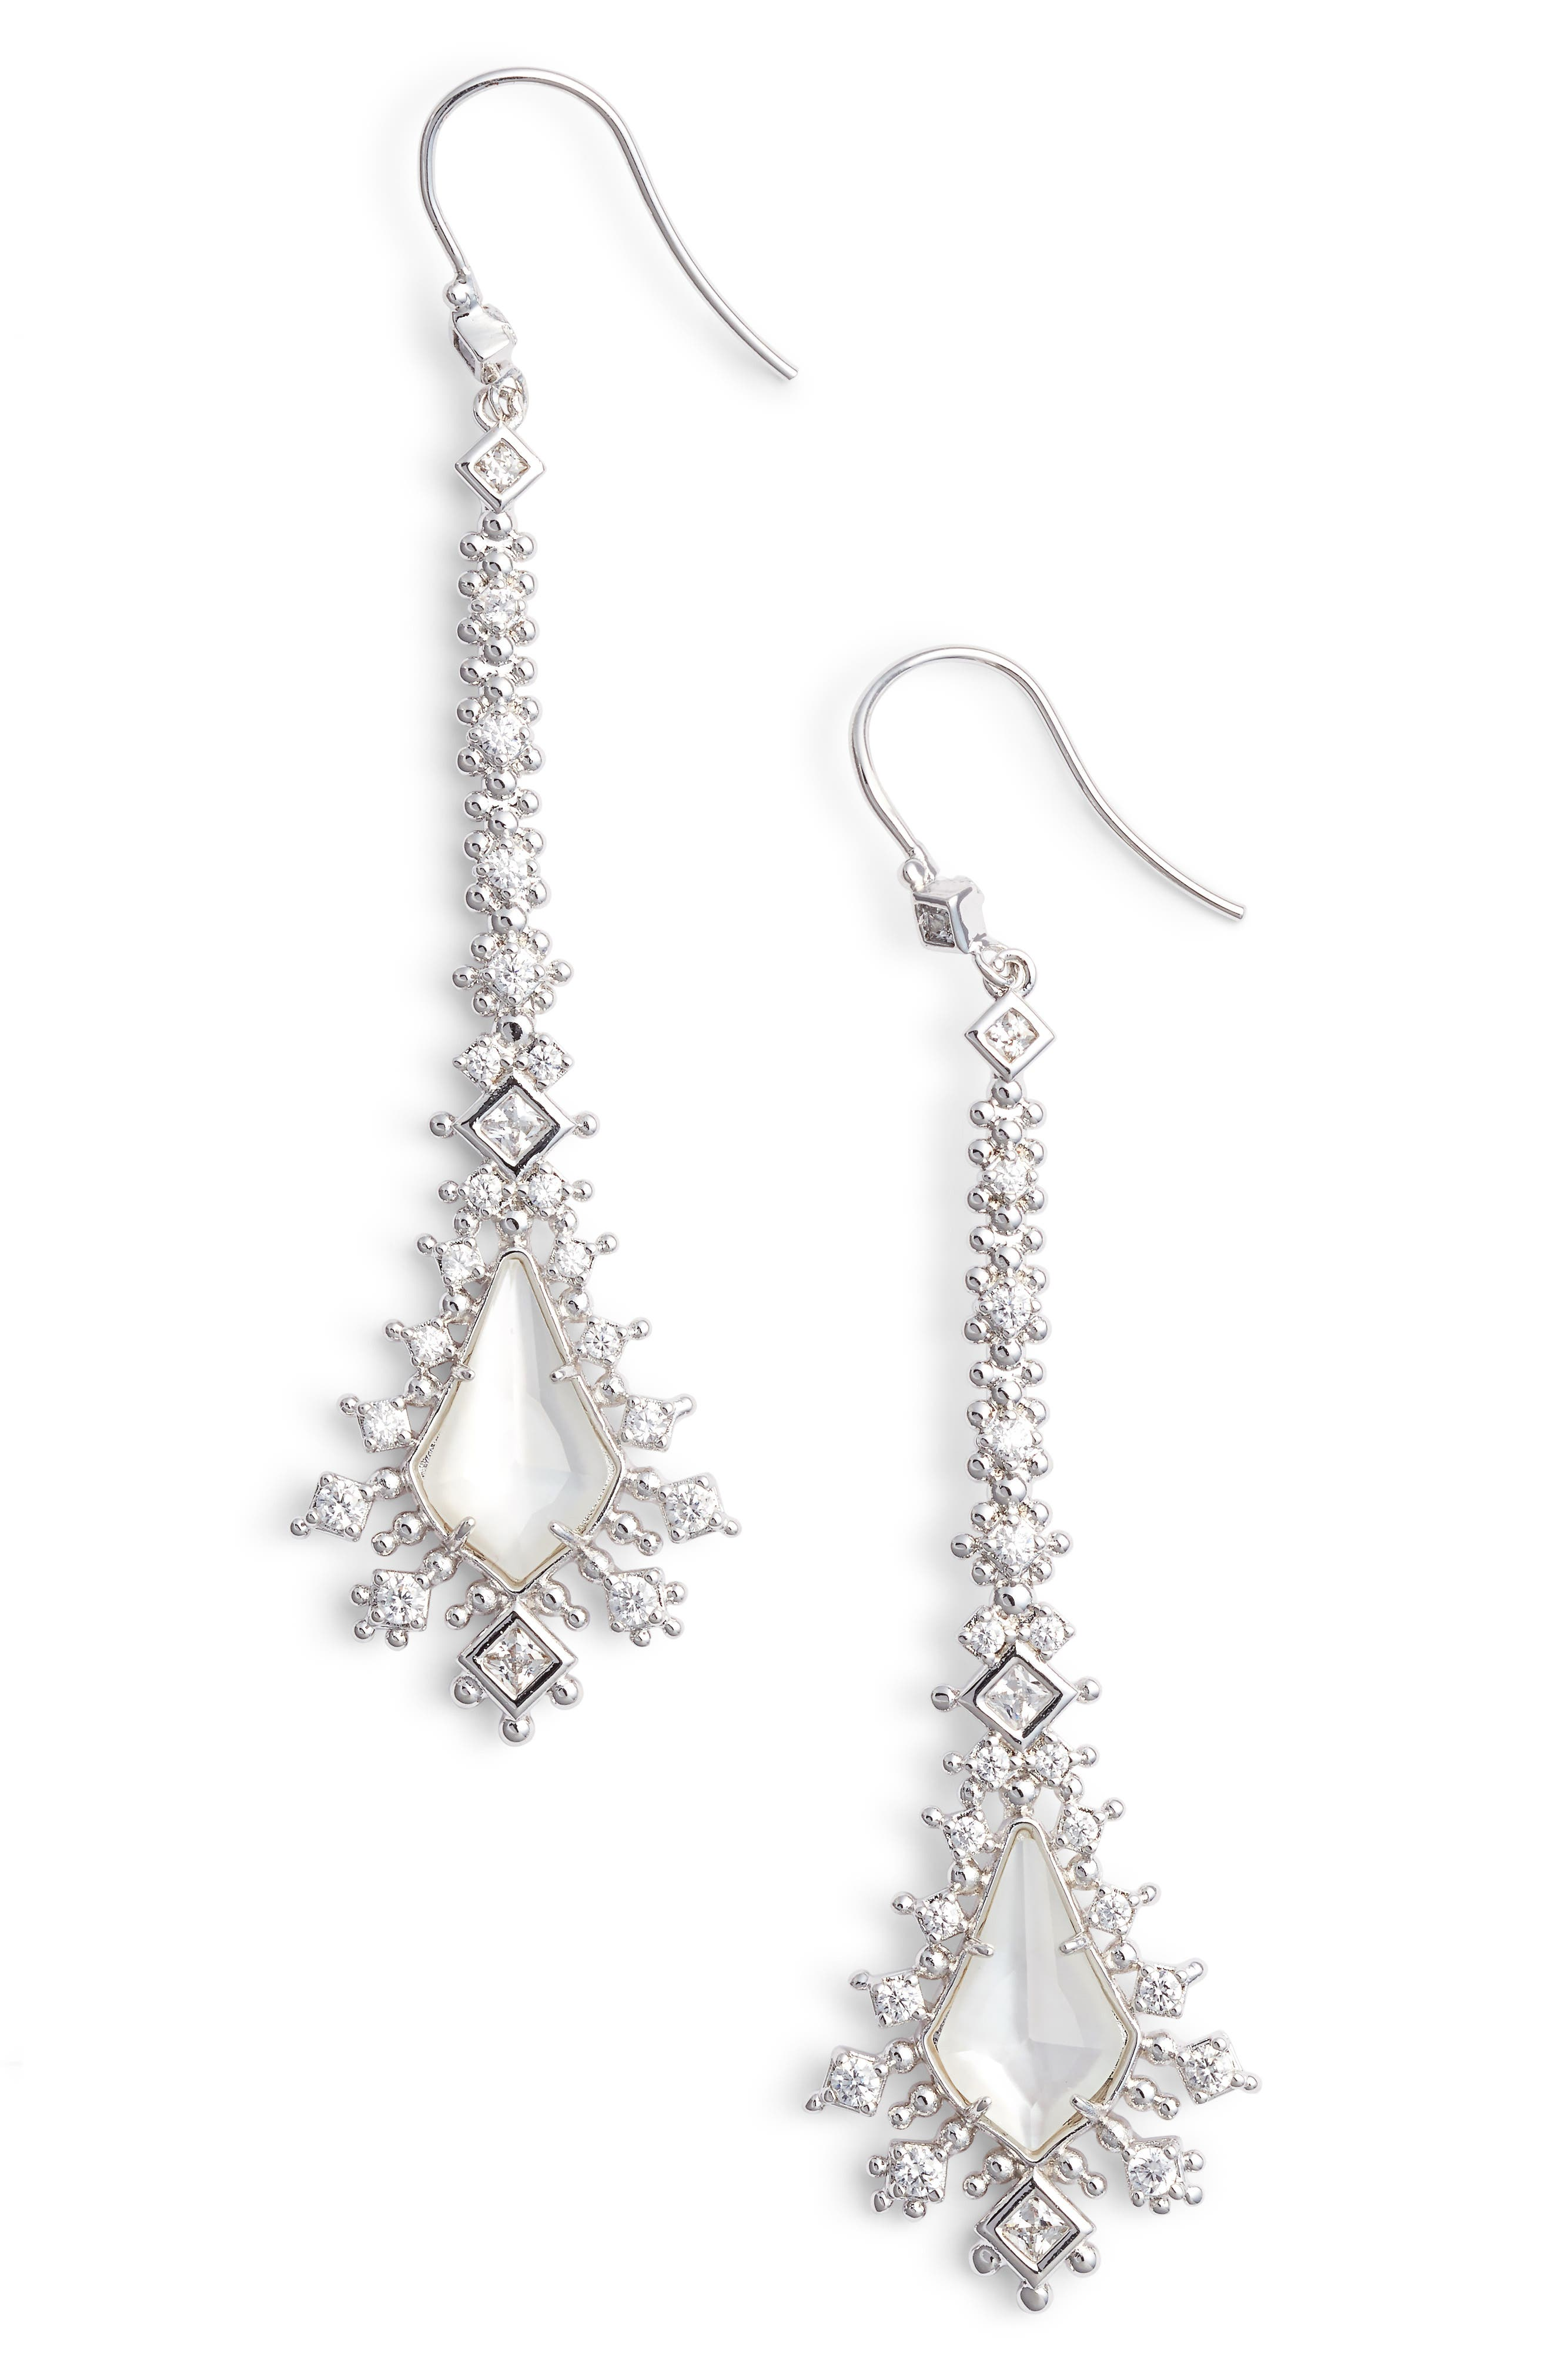 Reimer Mother of Pearl Drop Earrings,                             Main thumbnail 1, color,                             Silver